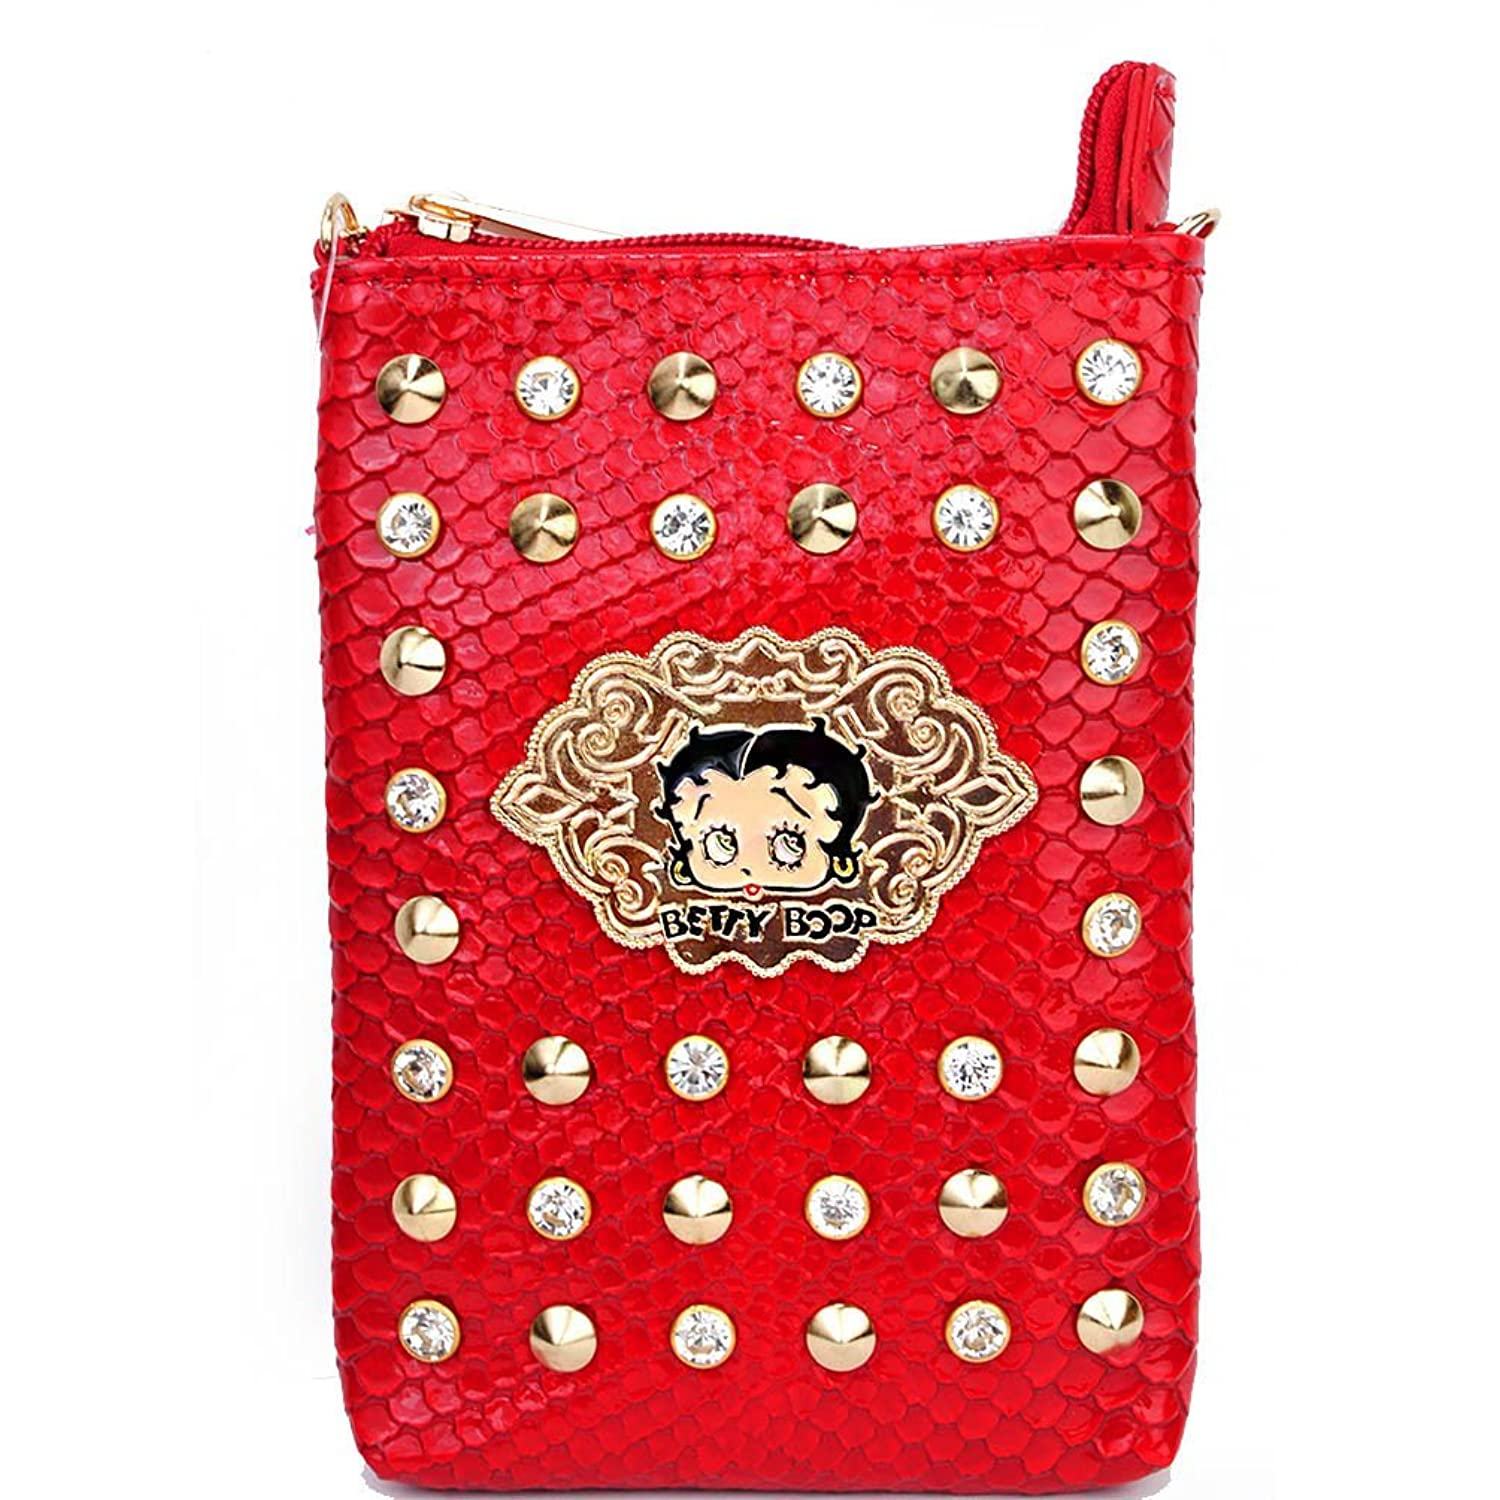 Betty Boop Animal Print Rhinestone Studded Mini Cross Body Bag